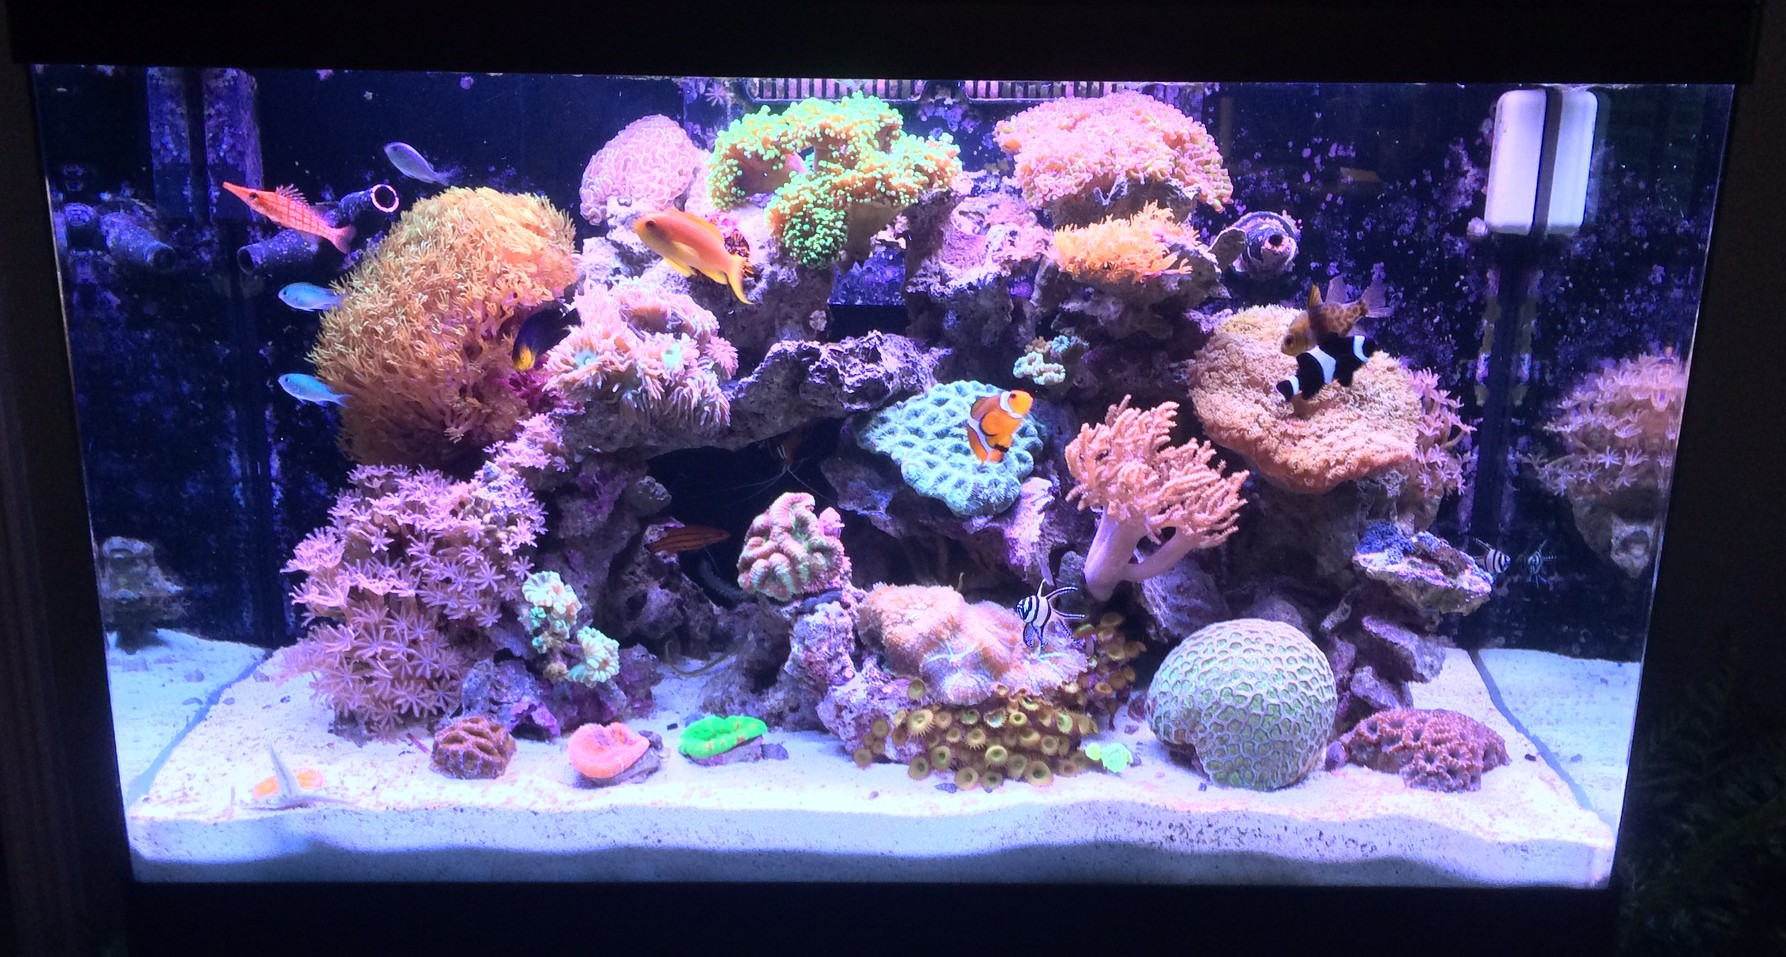 A quick shot of a nice little 60 gal reef we maintain